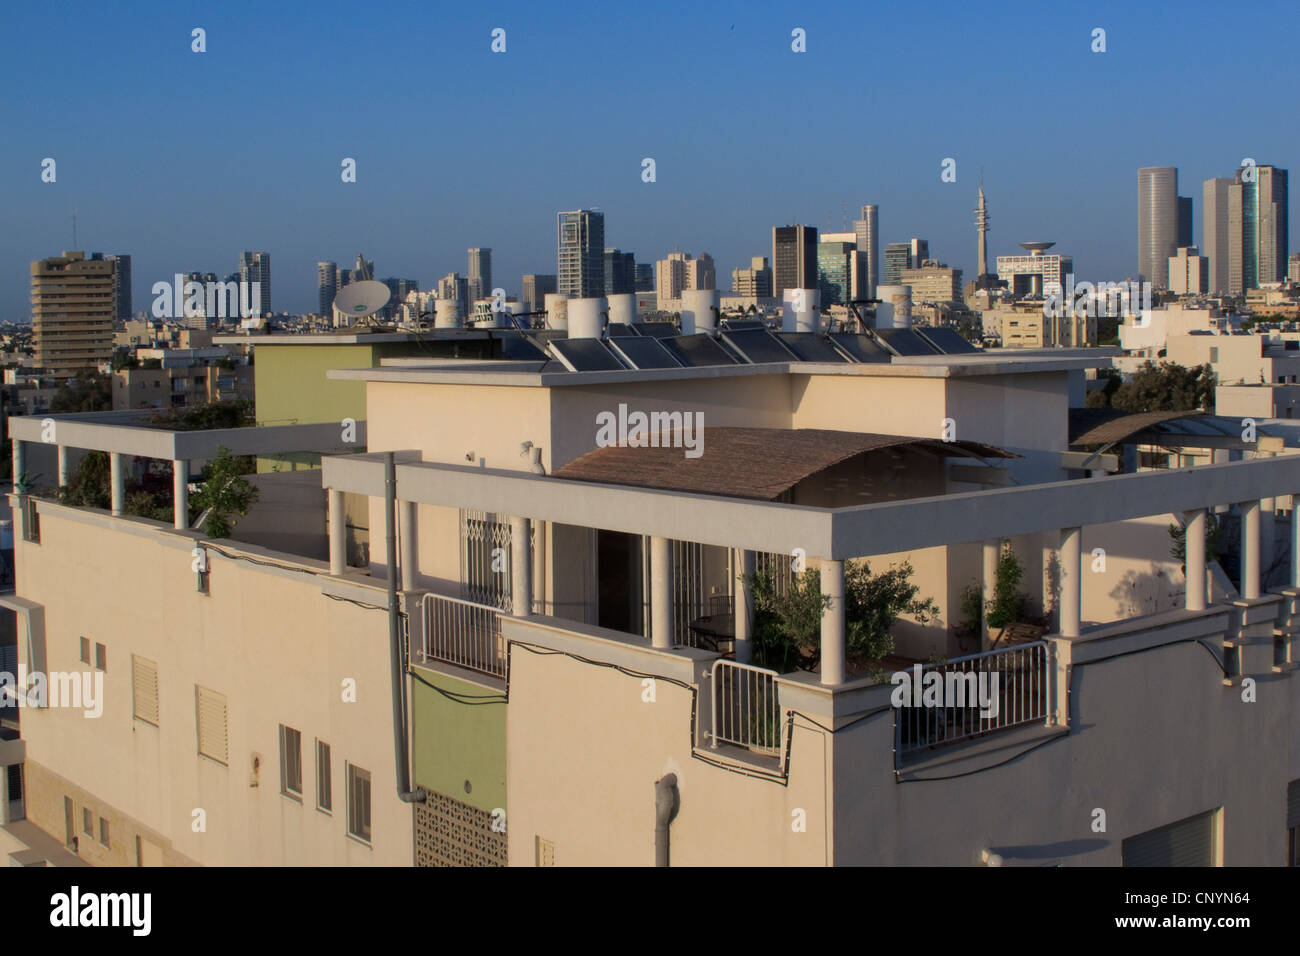 Scape of Tel Aviv downtown Israel - Stock Image